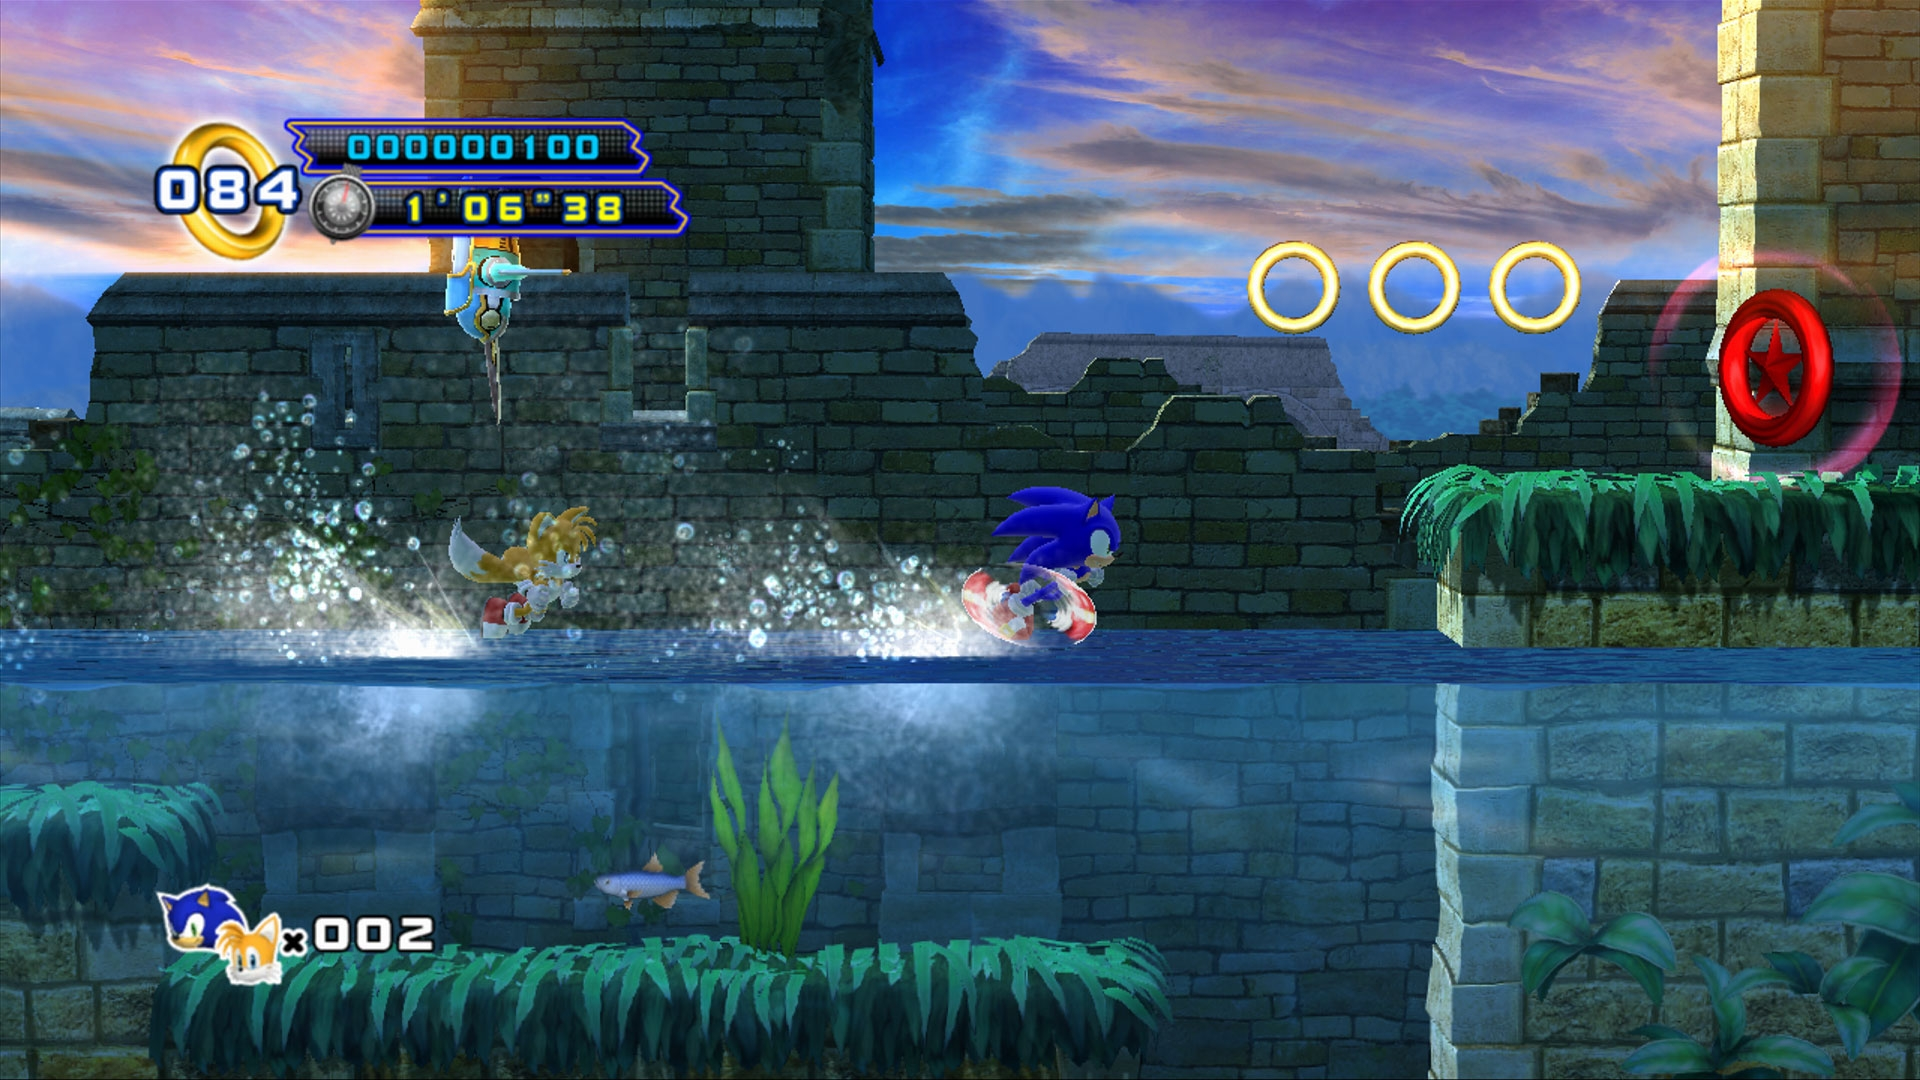 Sonic the Hedgehog 4: Episode II Review (PSN/XBLA) — Gamers